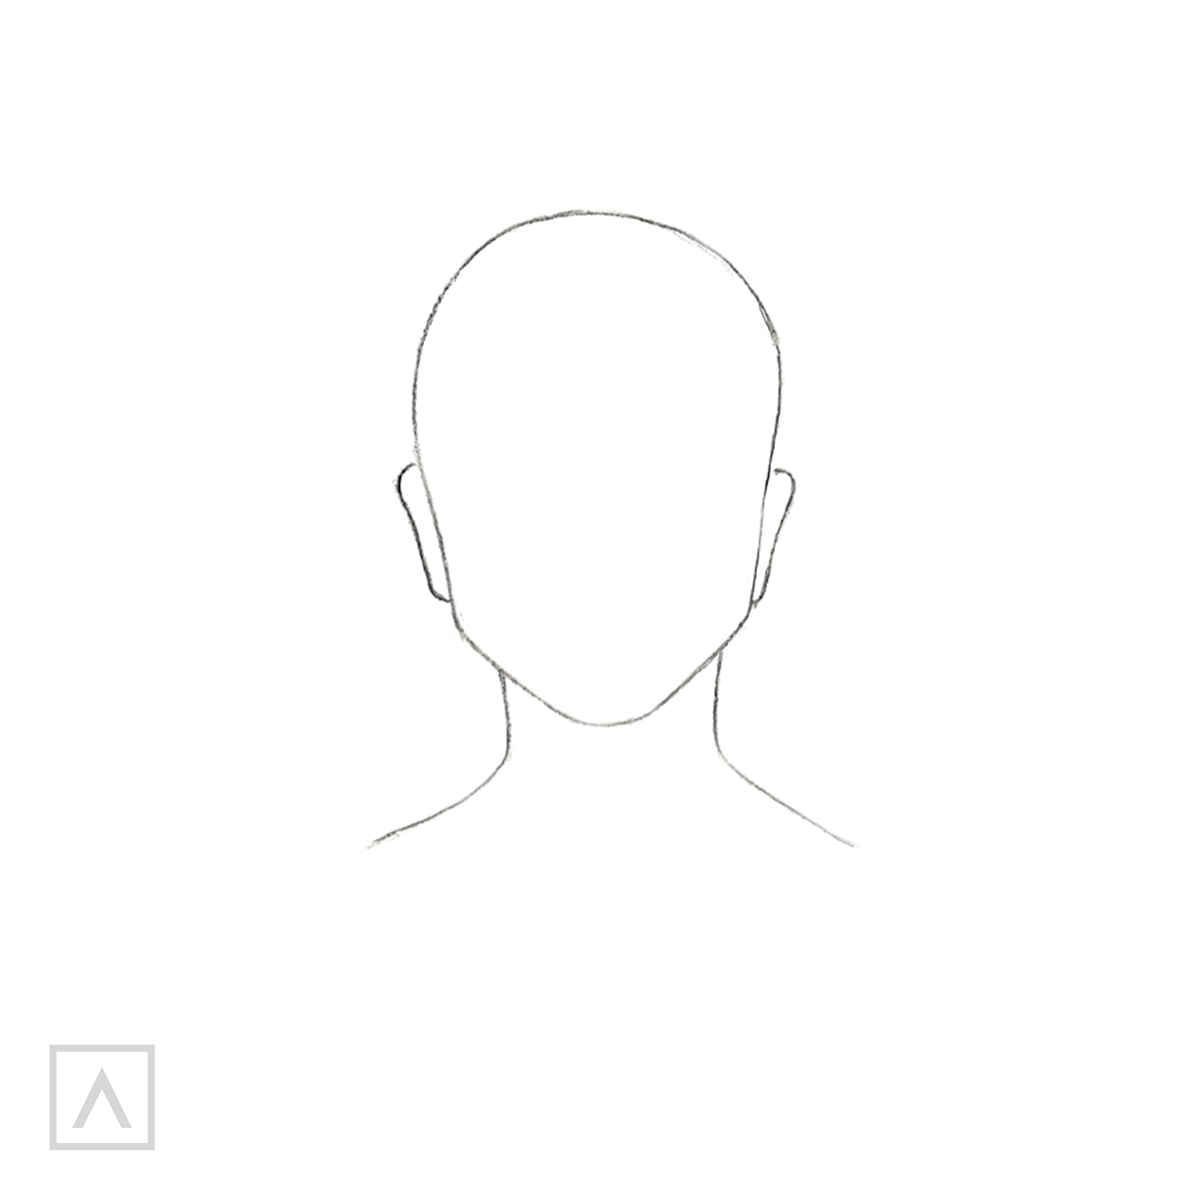 How to Draw Hair with Bangs - Step 1